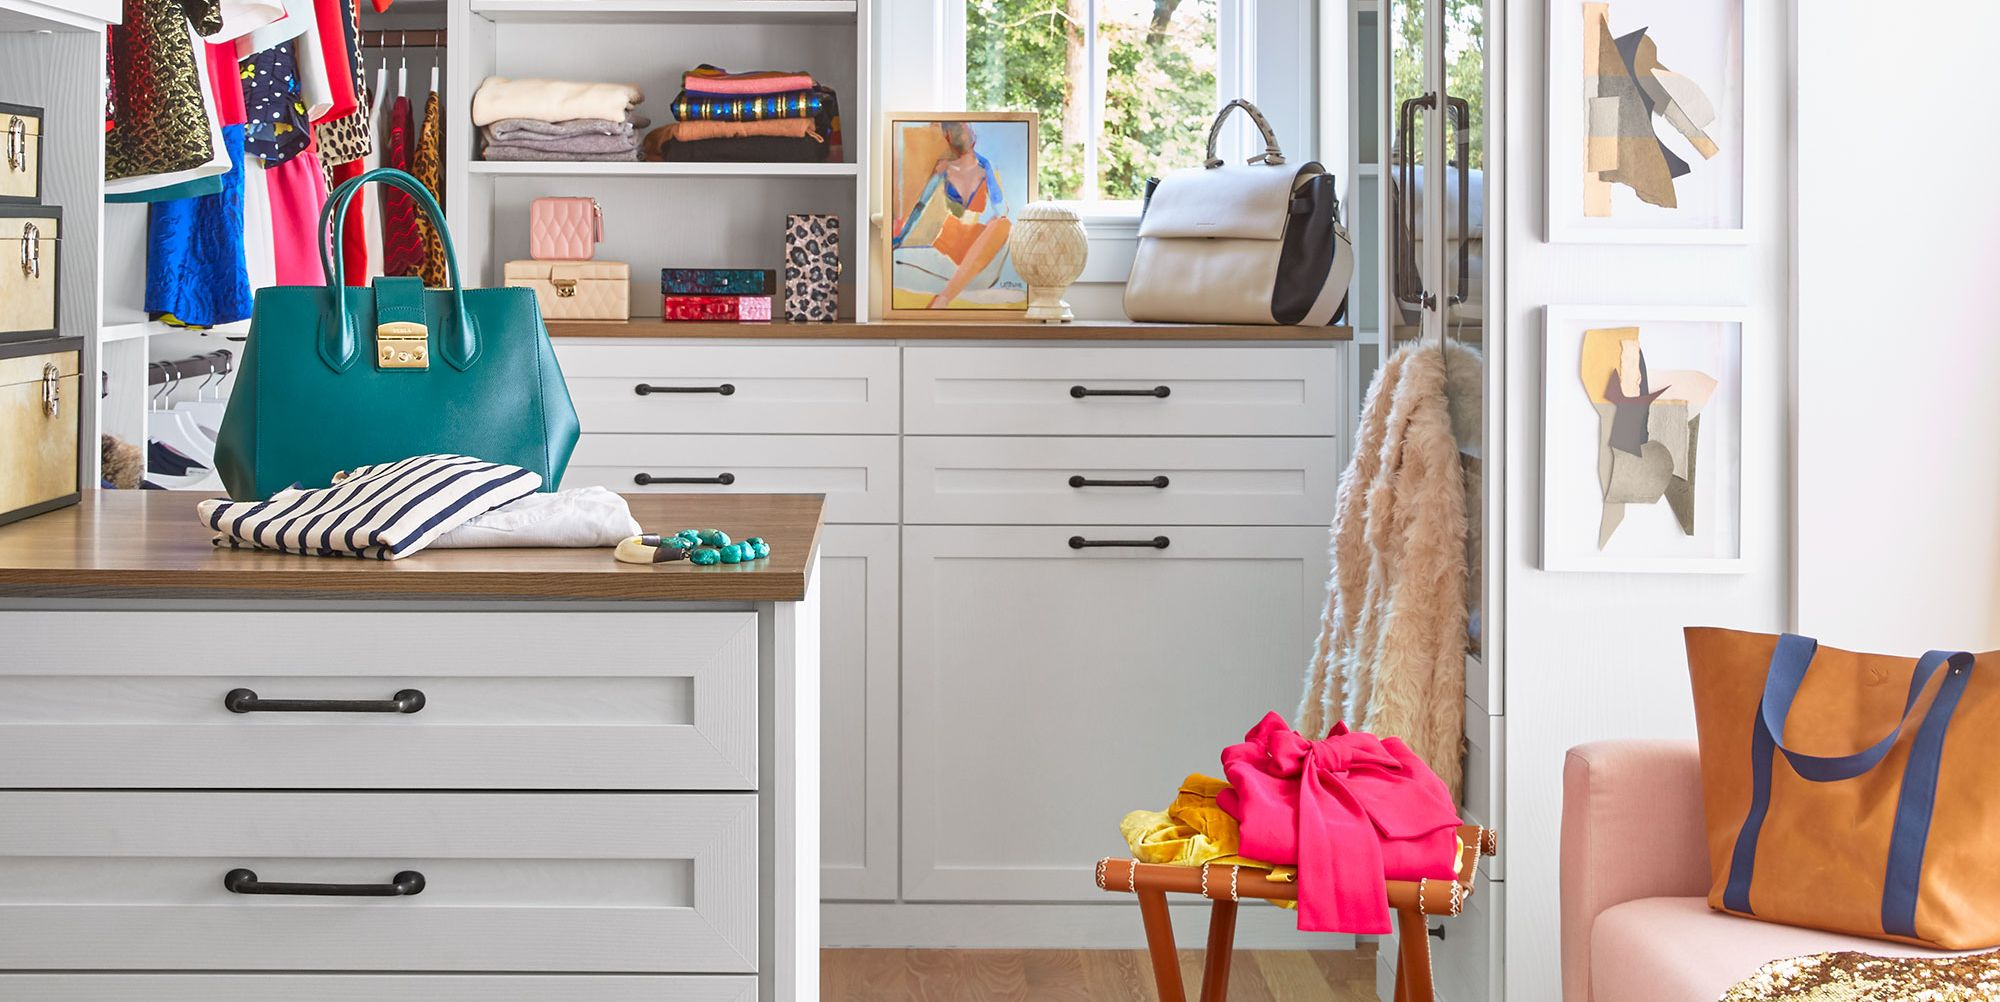 20 Walk-In Closets You'll Want To Live In